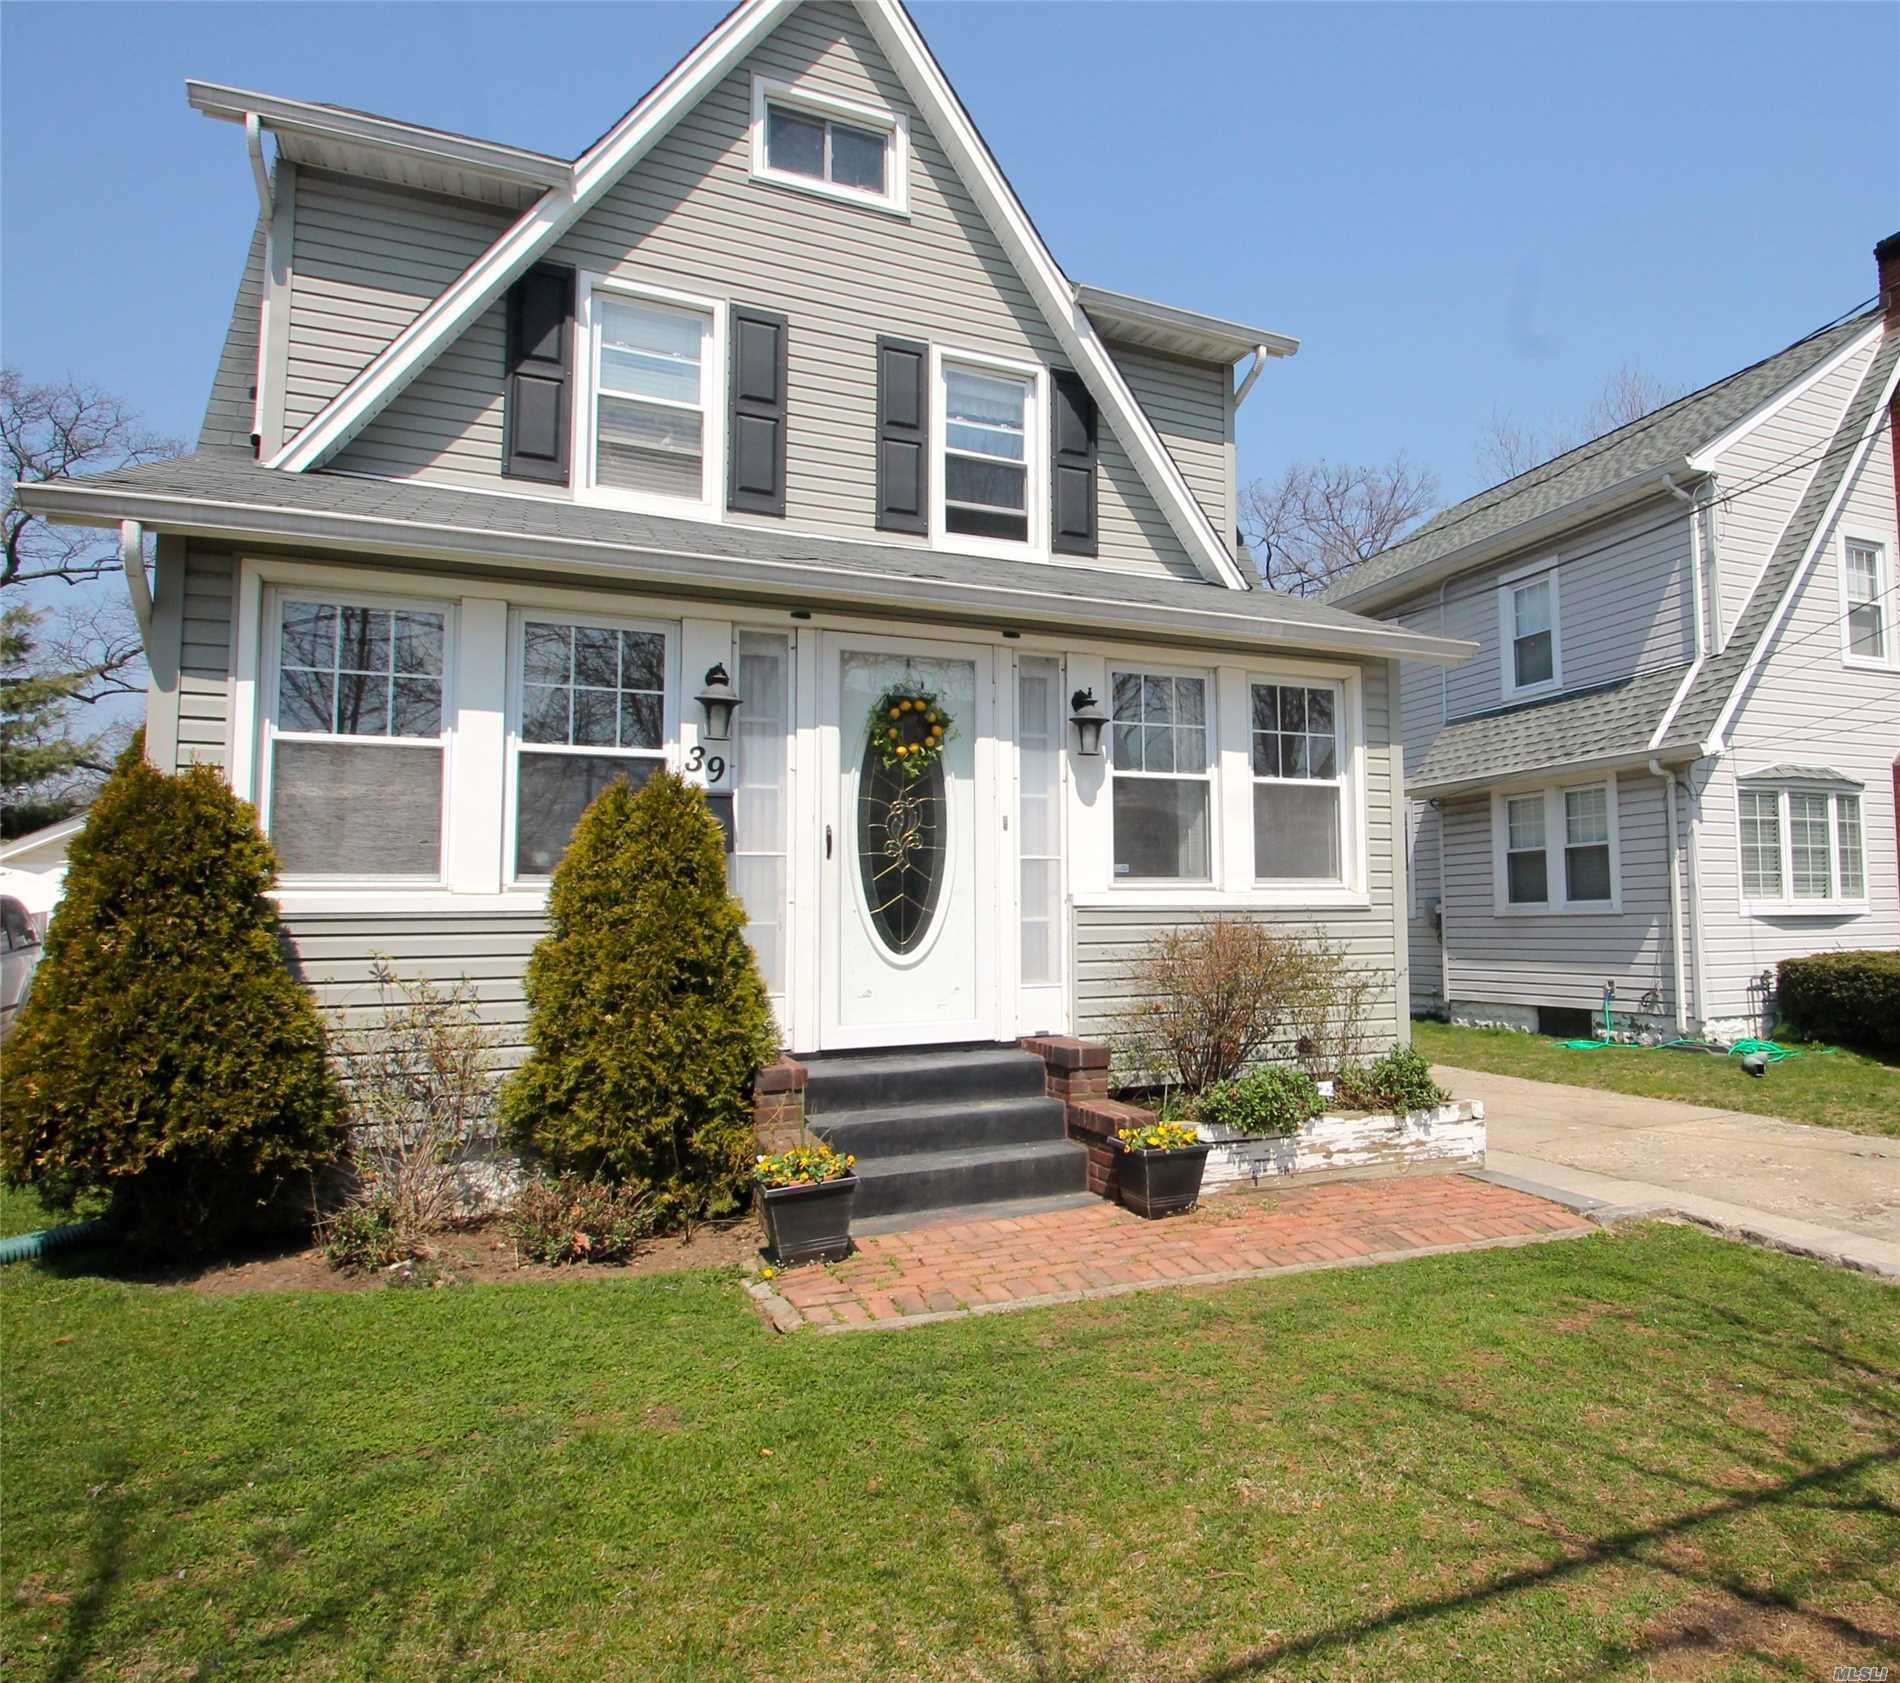 39 Monroe Street, Lynbrook (SOLD 1 DAY OVER ASKING)